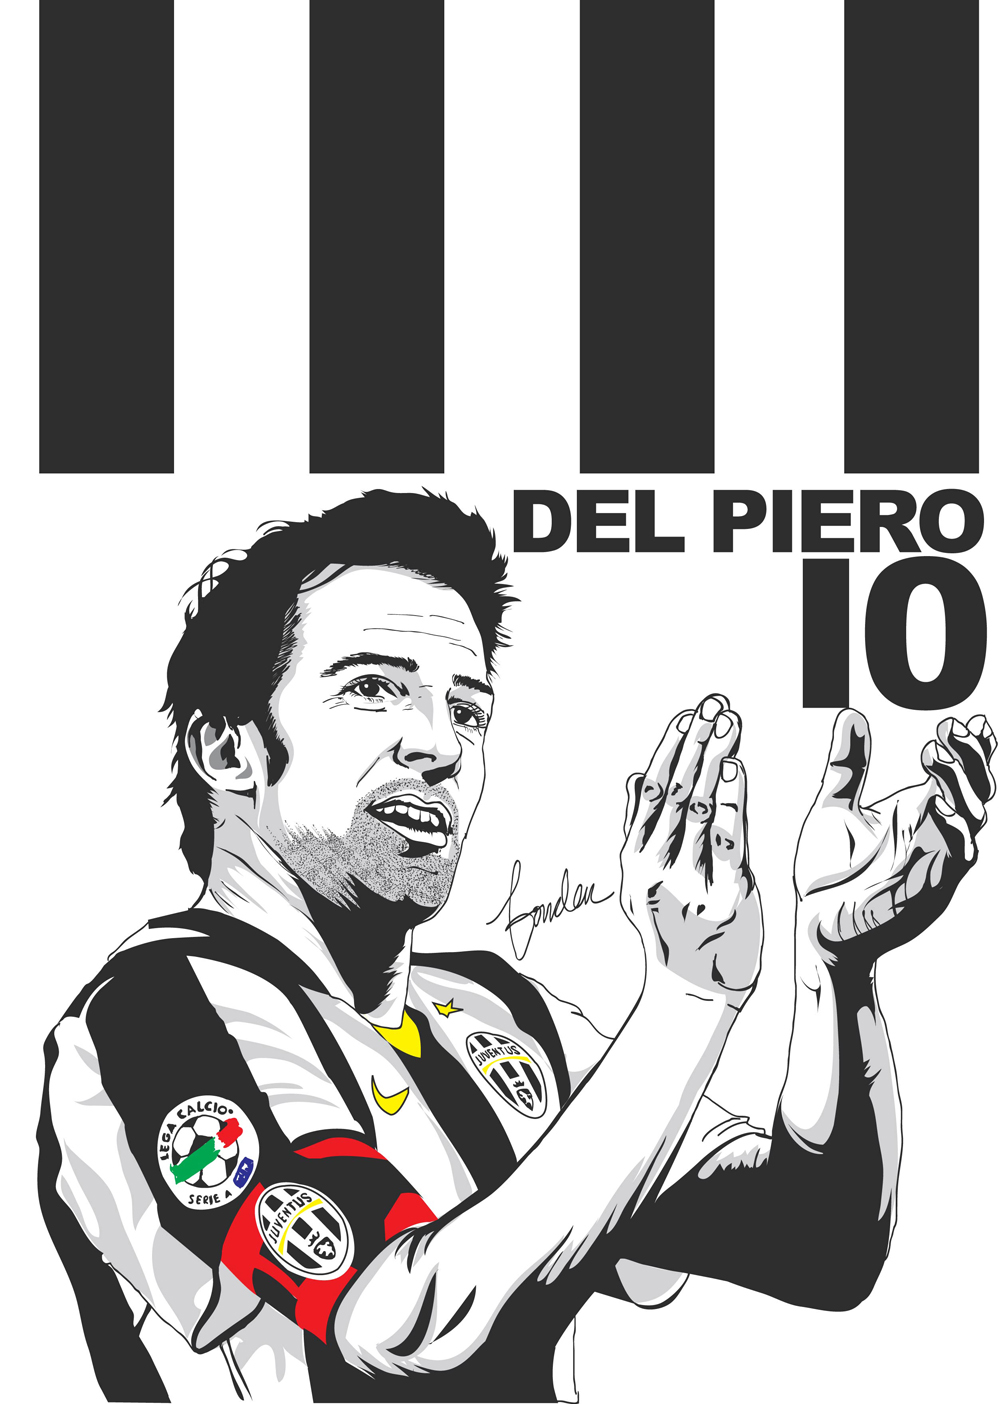 Alessandro Del Piero By Pribadiganda On DeviantArt